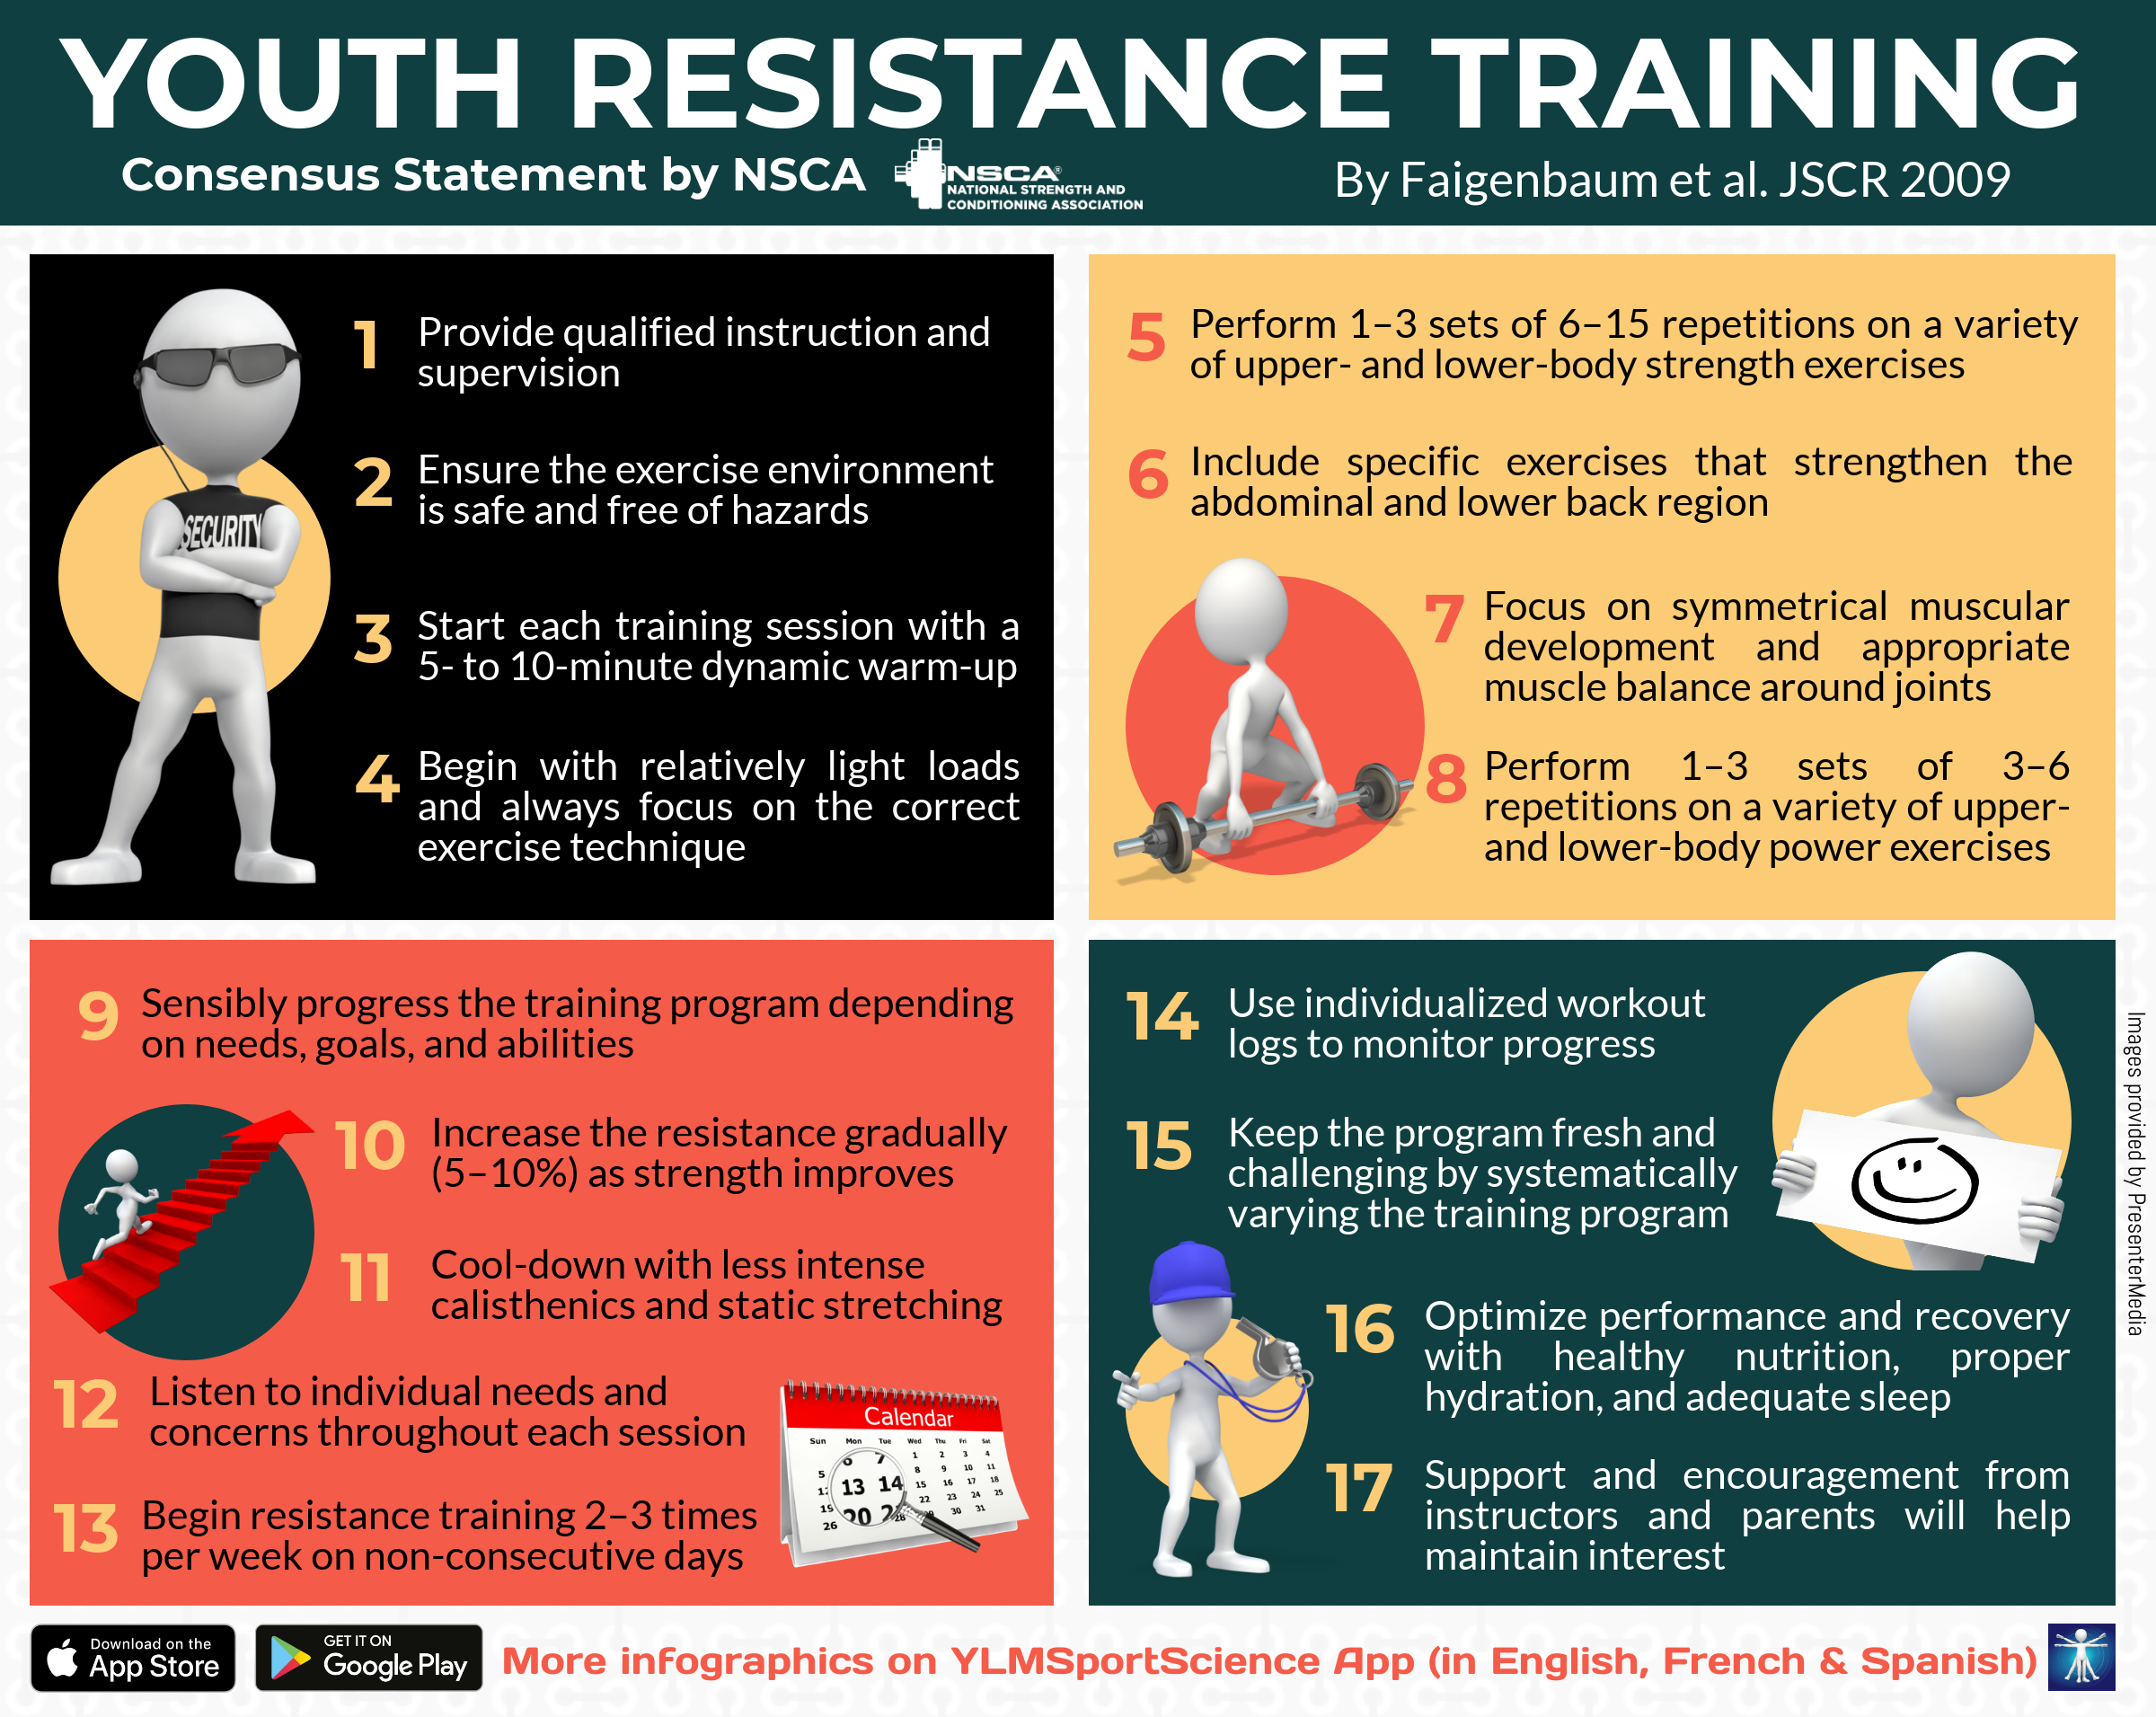 Infographic: Youth Resistance Training